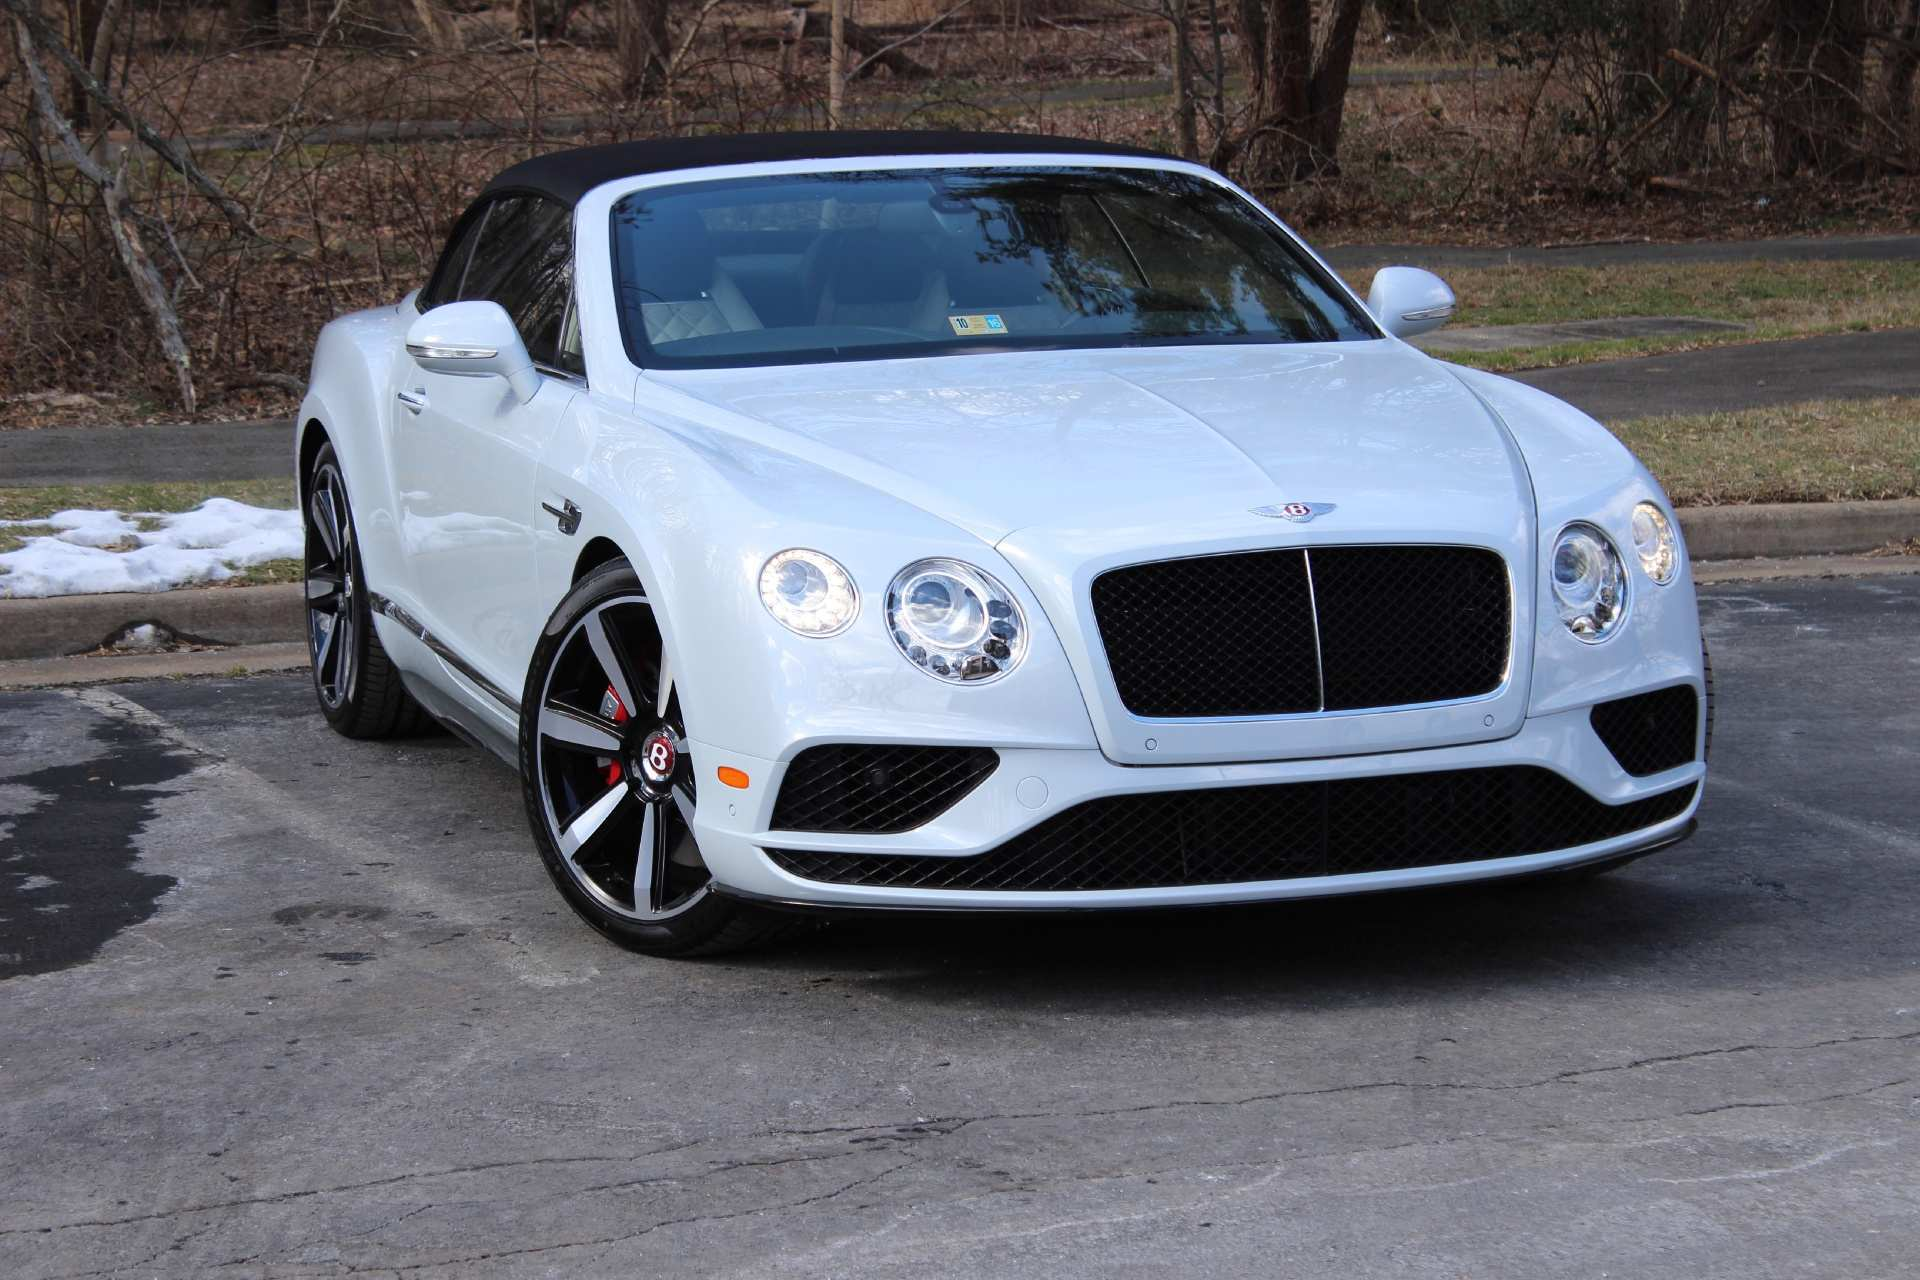 51 Best Review 2019 Bentley Continental Gt V8 First Drive by 2019 Bentley Continental Gt V8